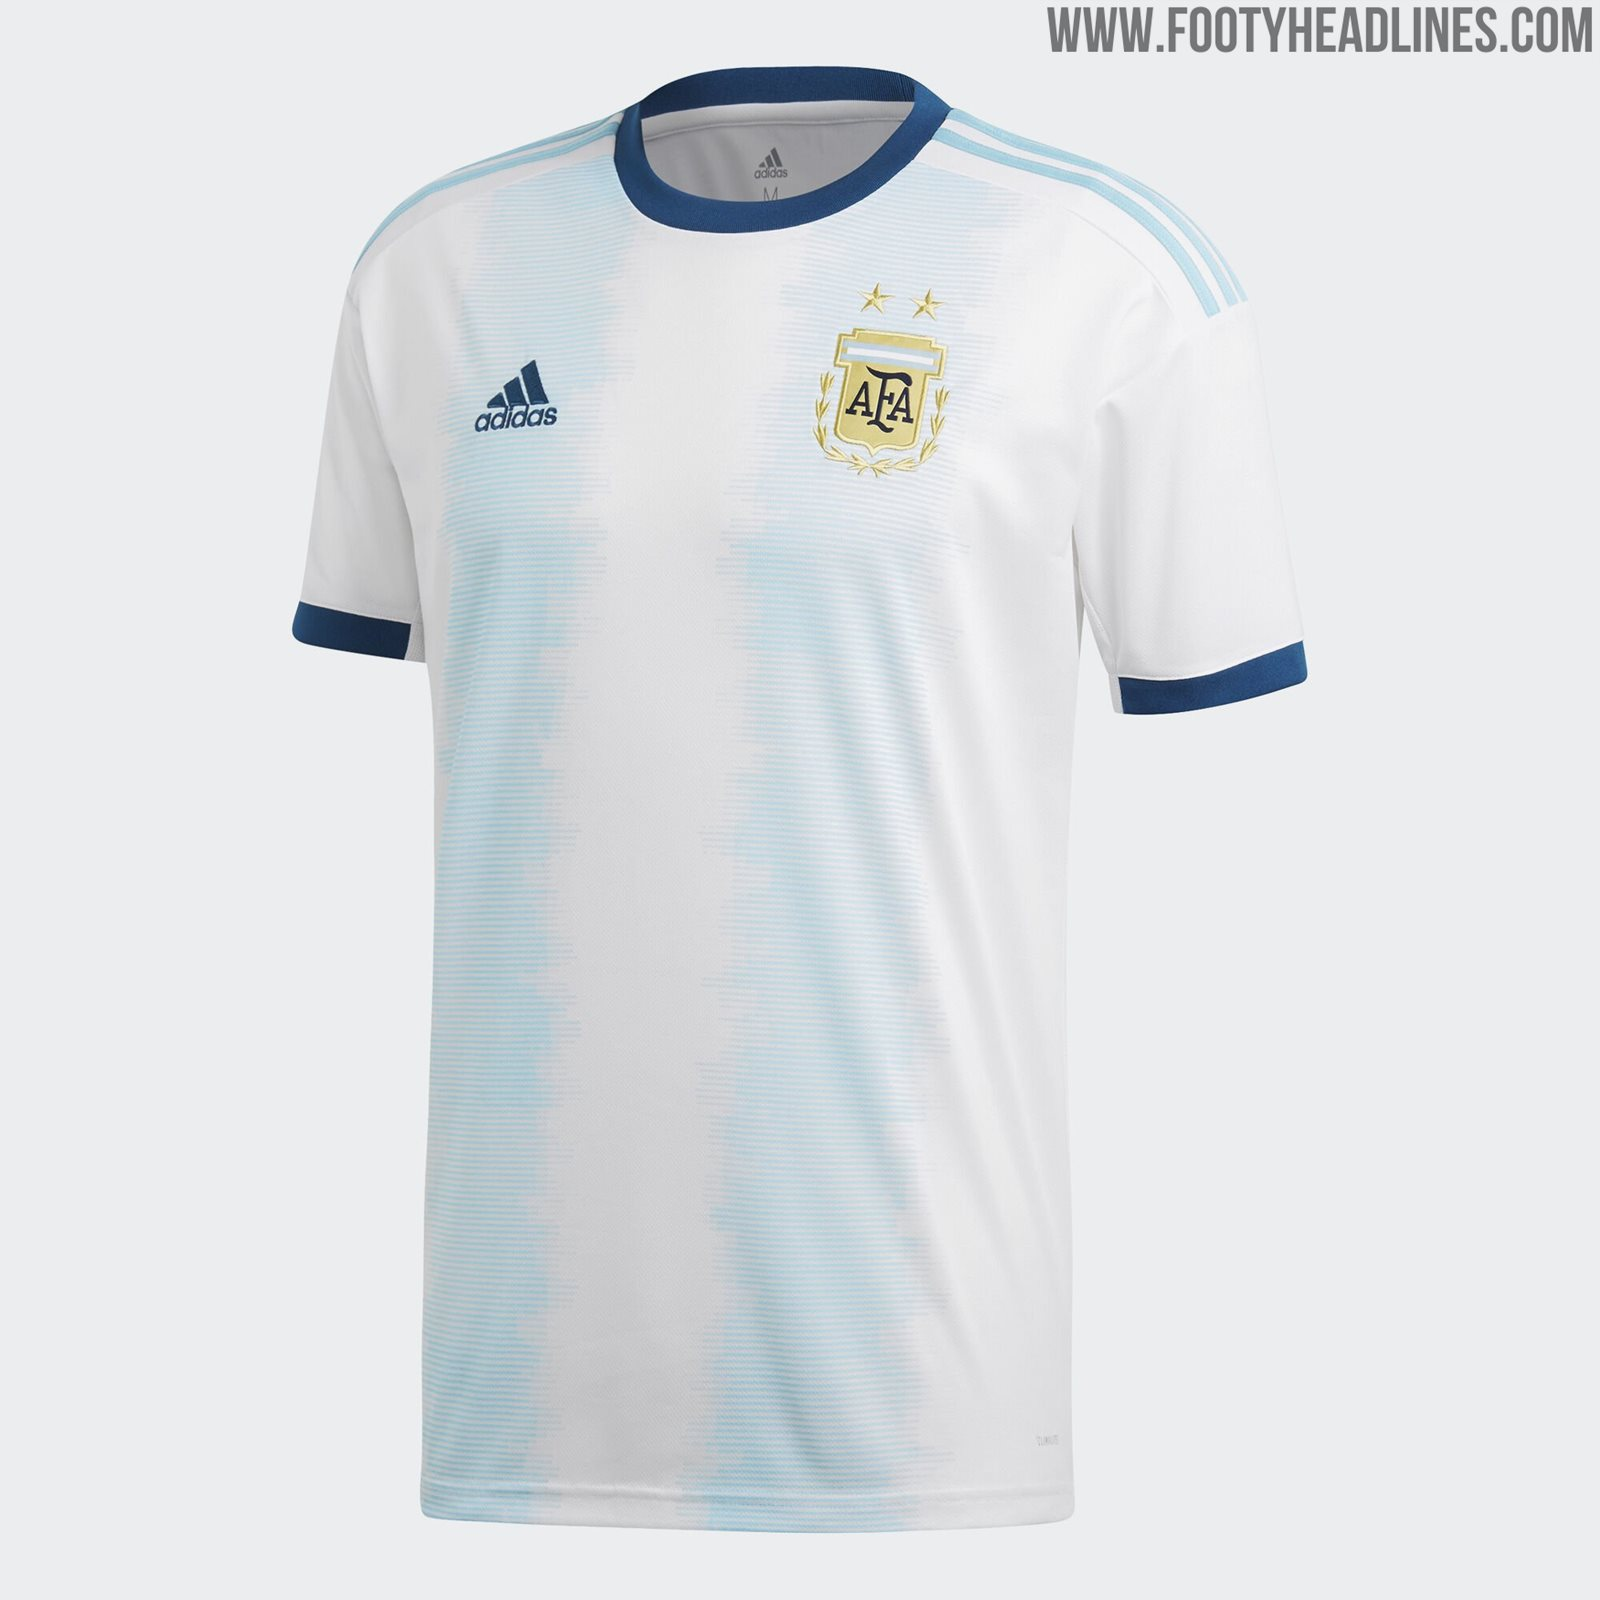 World Cup 2020 Colombia.Adidas To Release New Argentina Colombia Home Kits In 2020